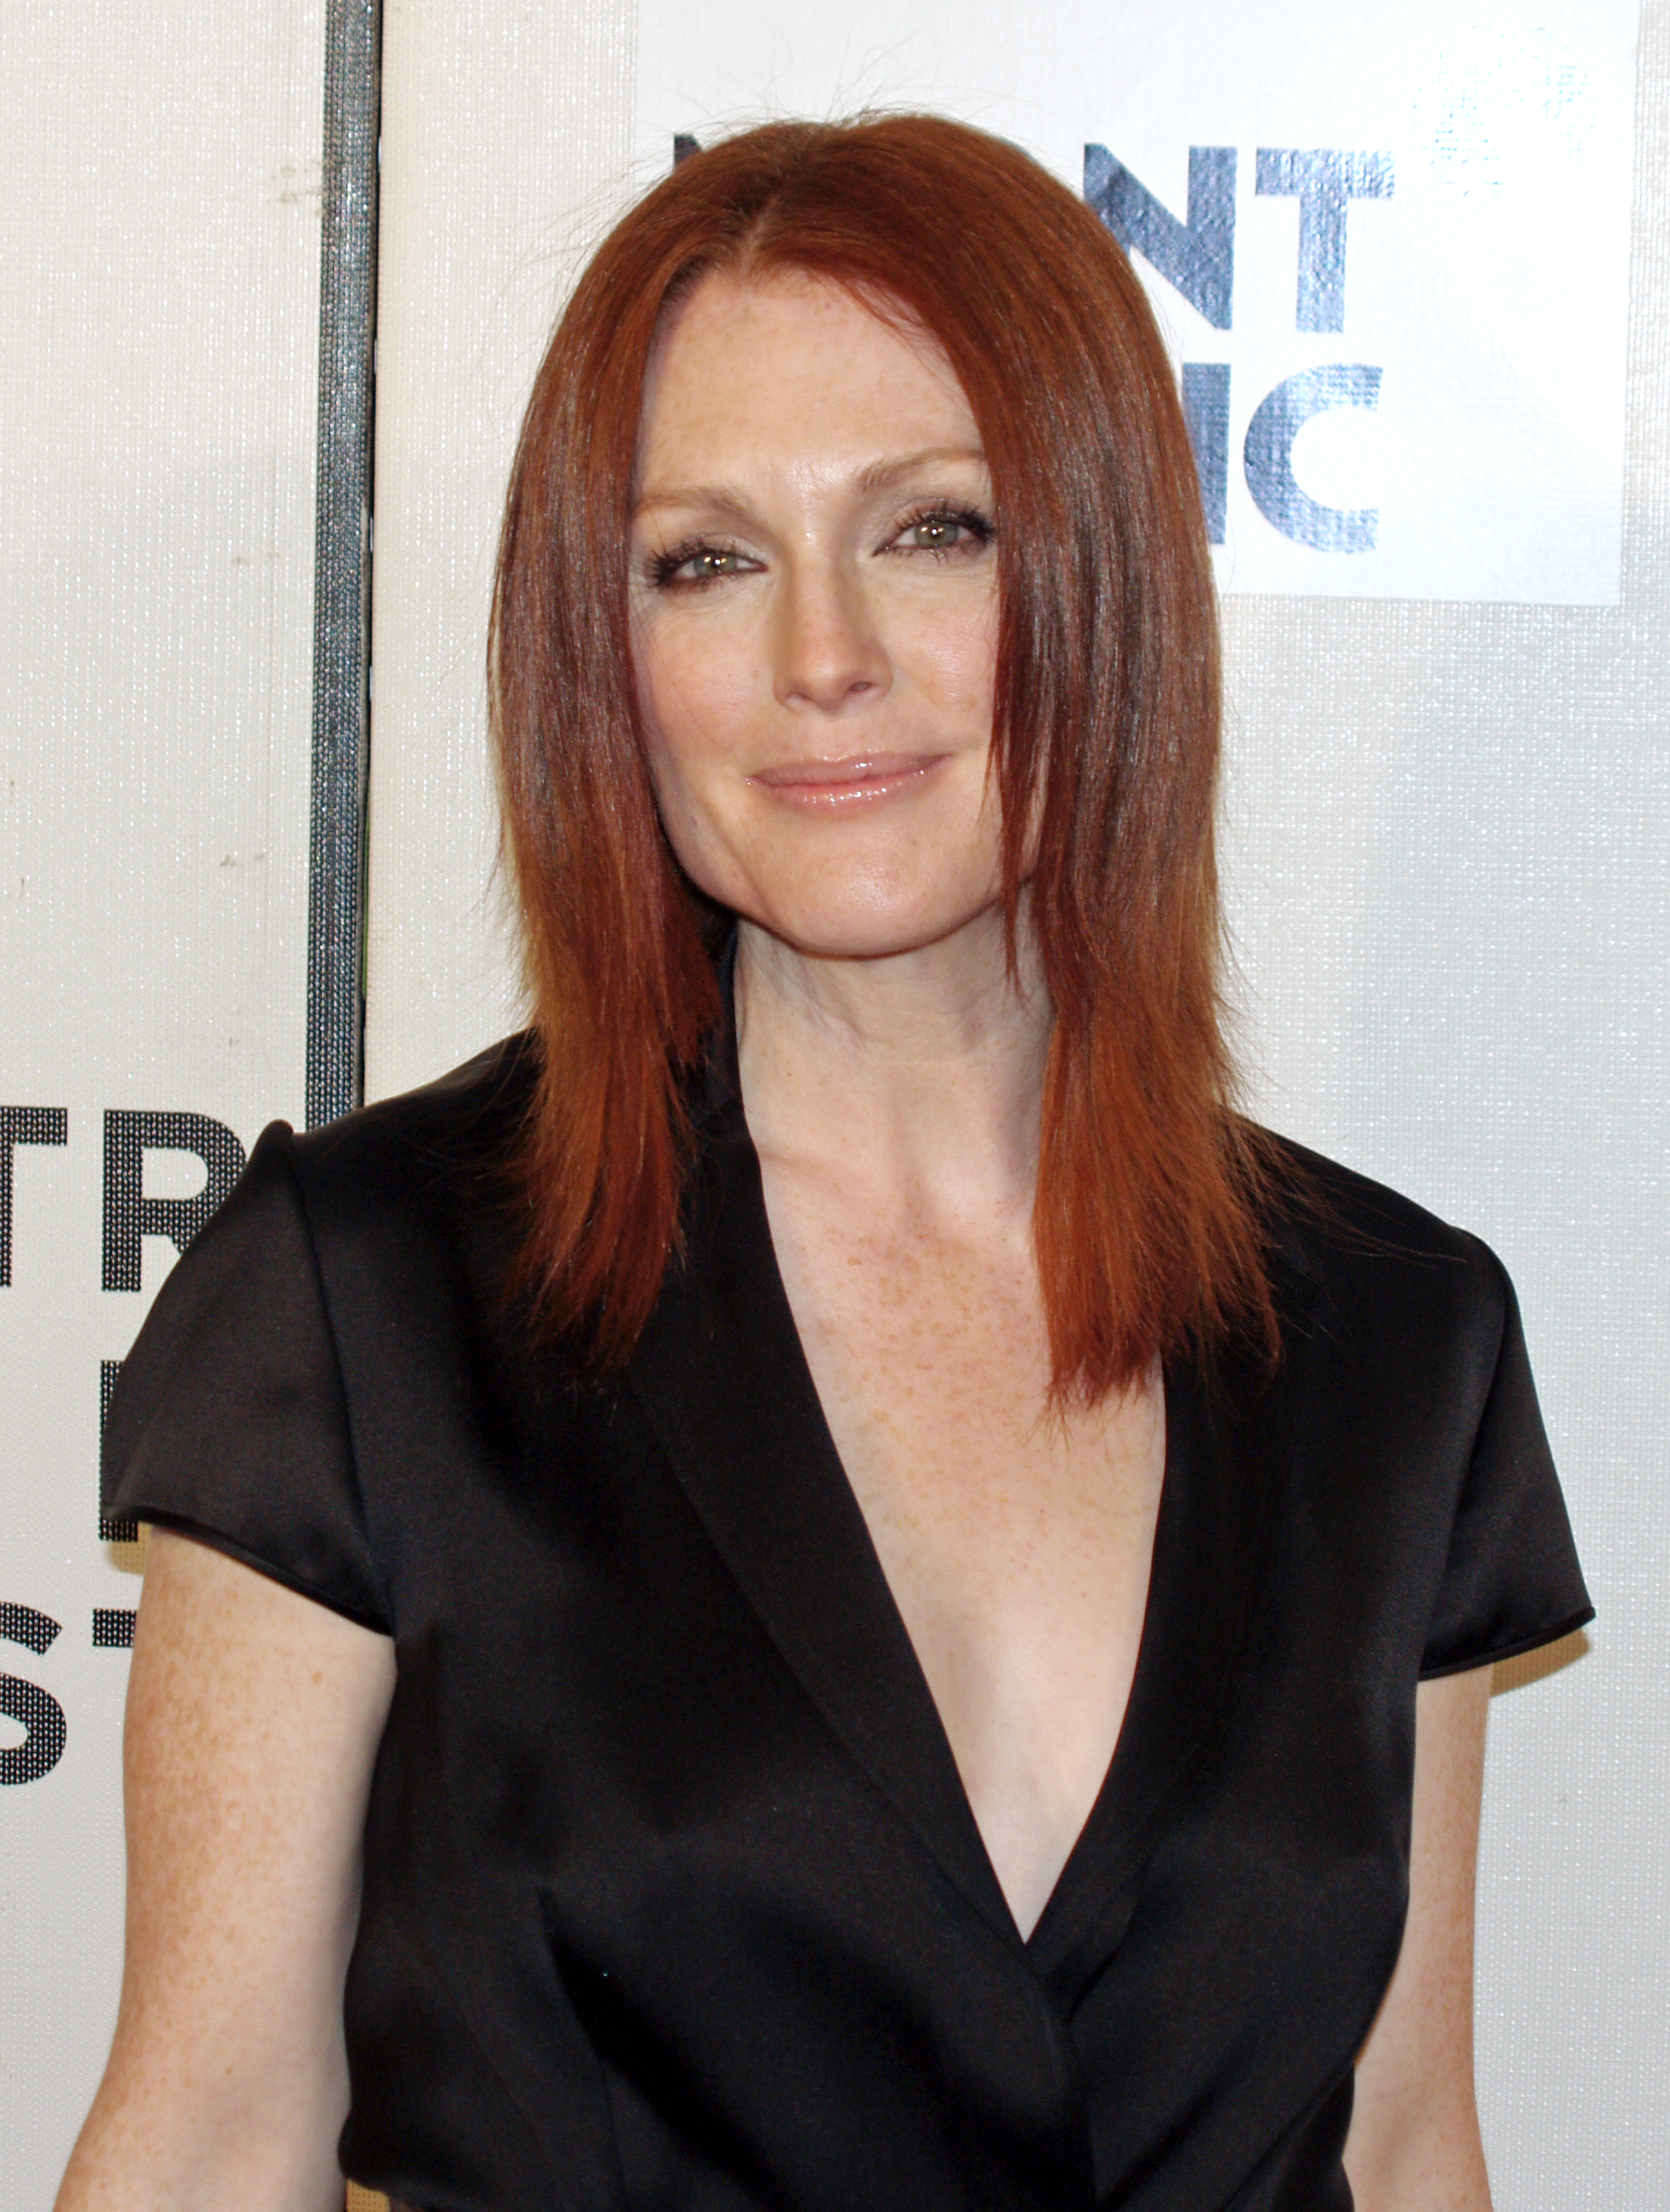 Julianne_Moore_by_David_Shankbone.jpg